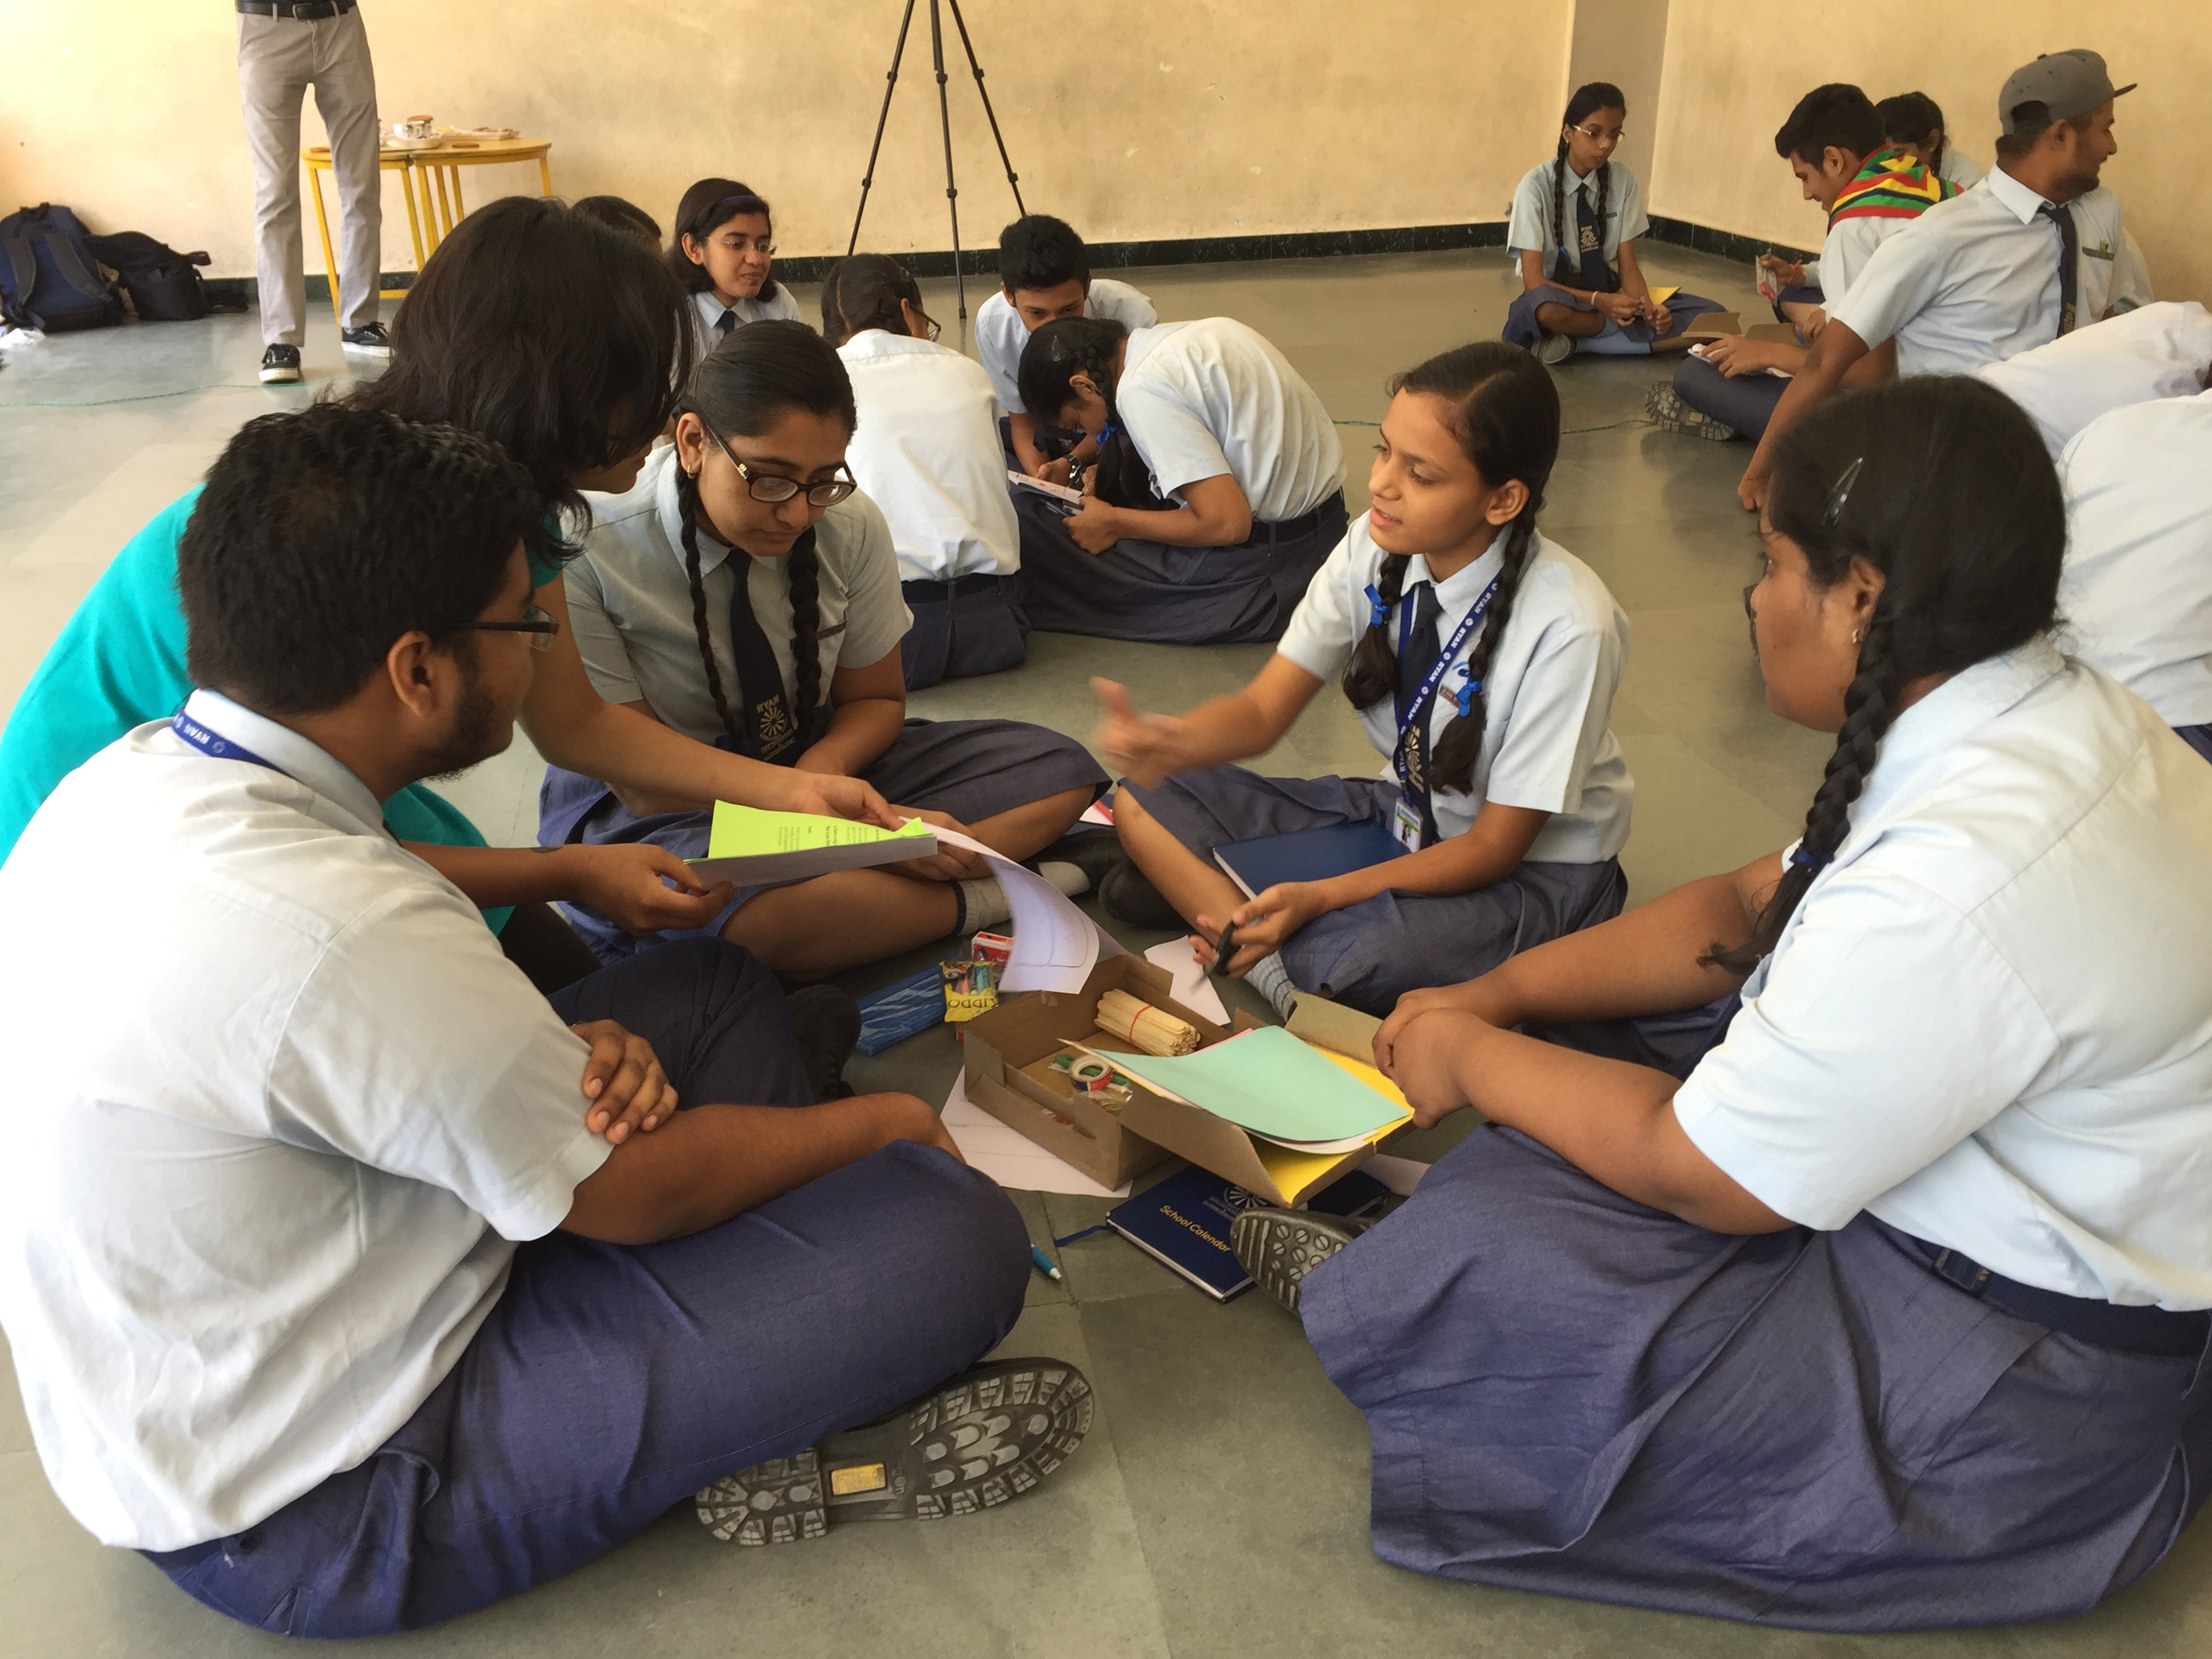 Design Thinking' workshop conducted for school children in Bhopal